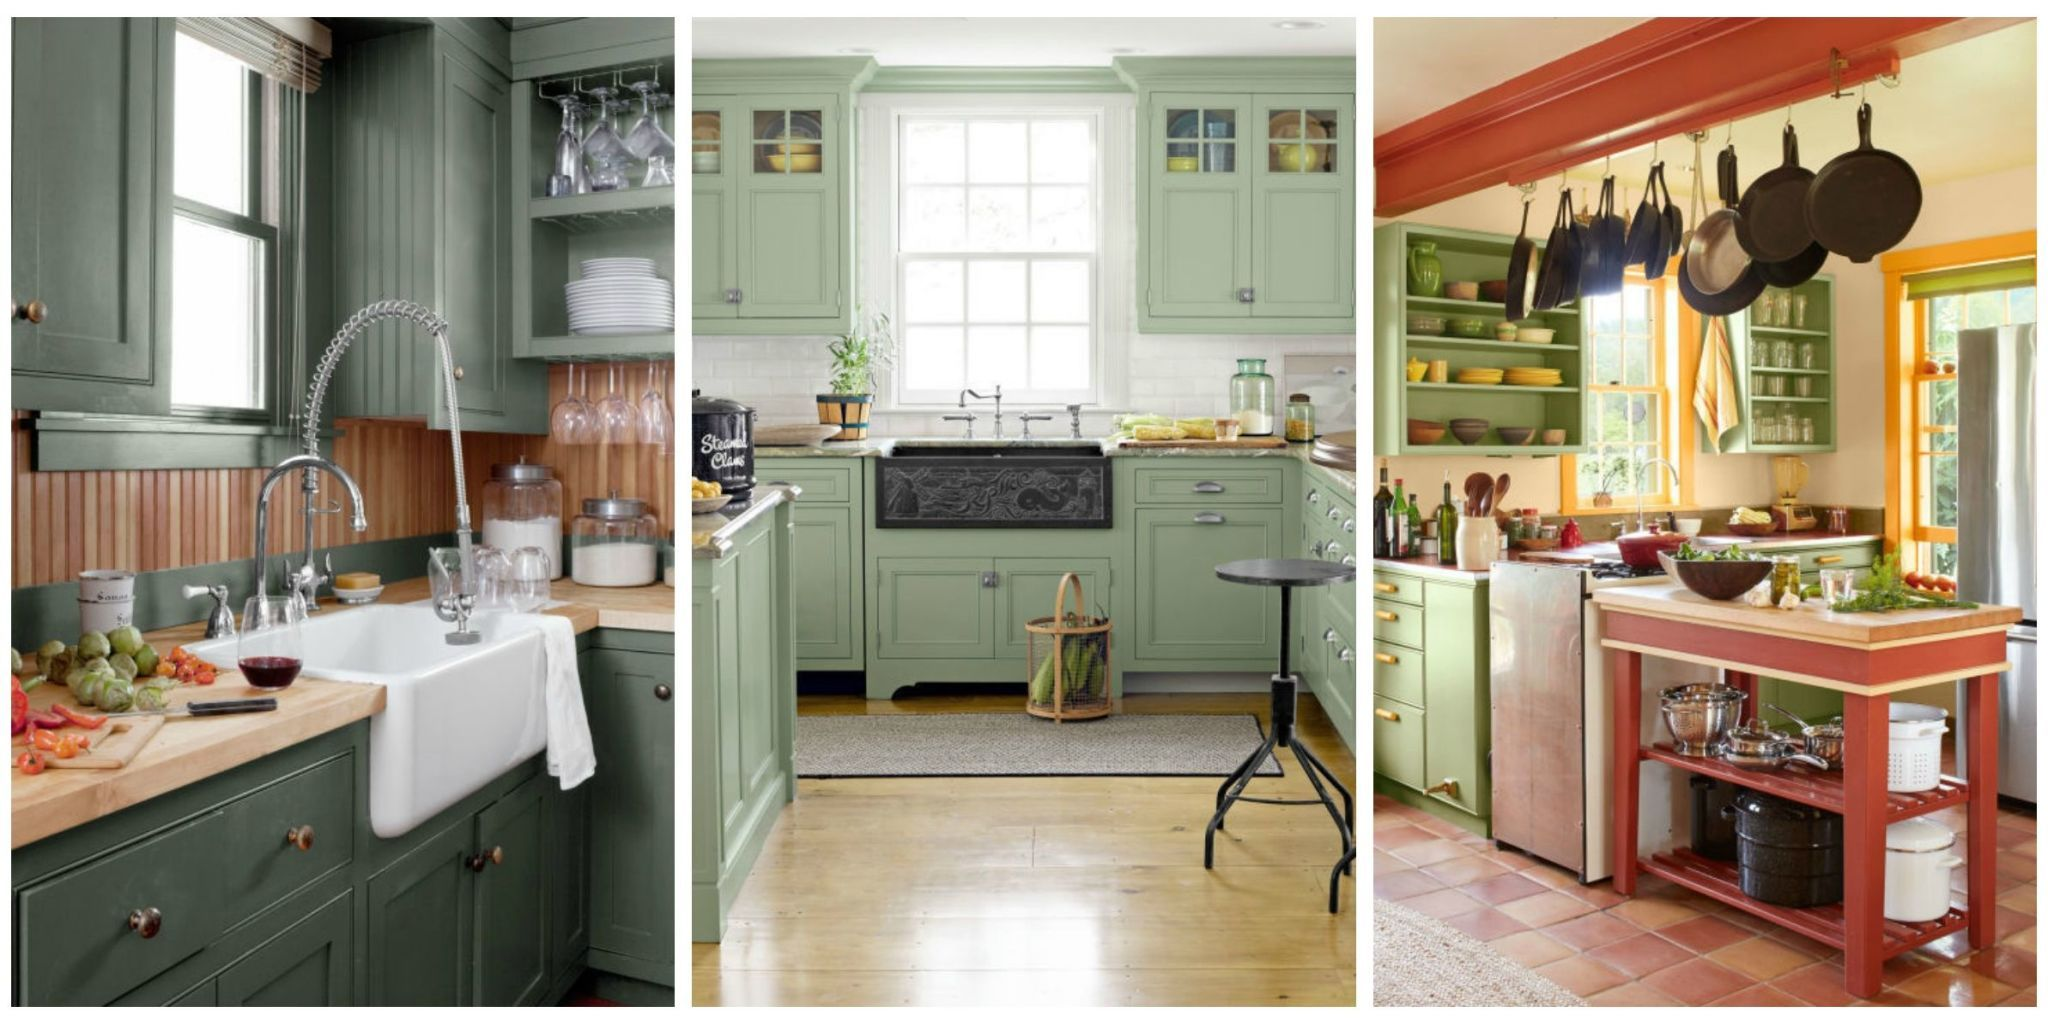 Weu0027re Here To Give You The Green Light To Proceed With Your Next Home  Improvement Project! With Paint Options Ranging From Mint To Sage, These Green  Kitchen ...